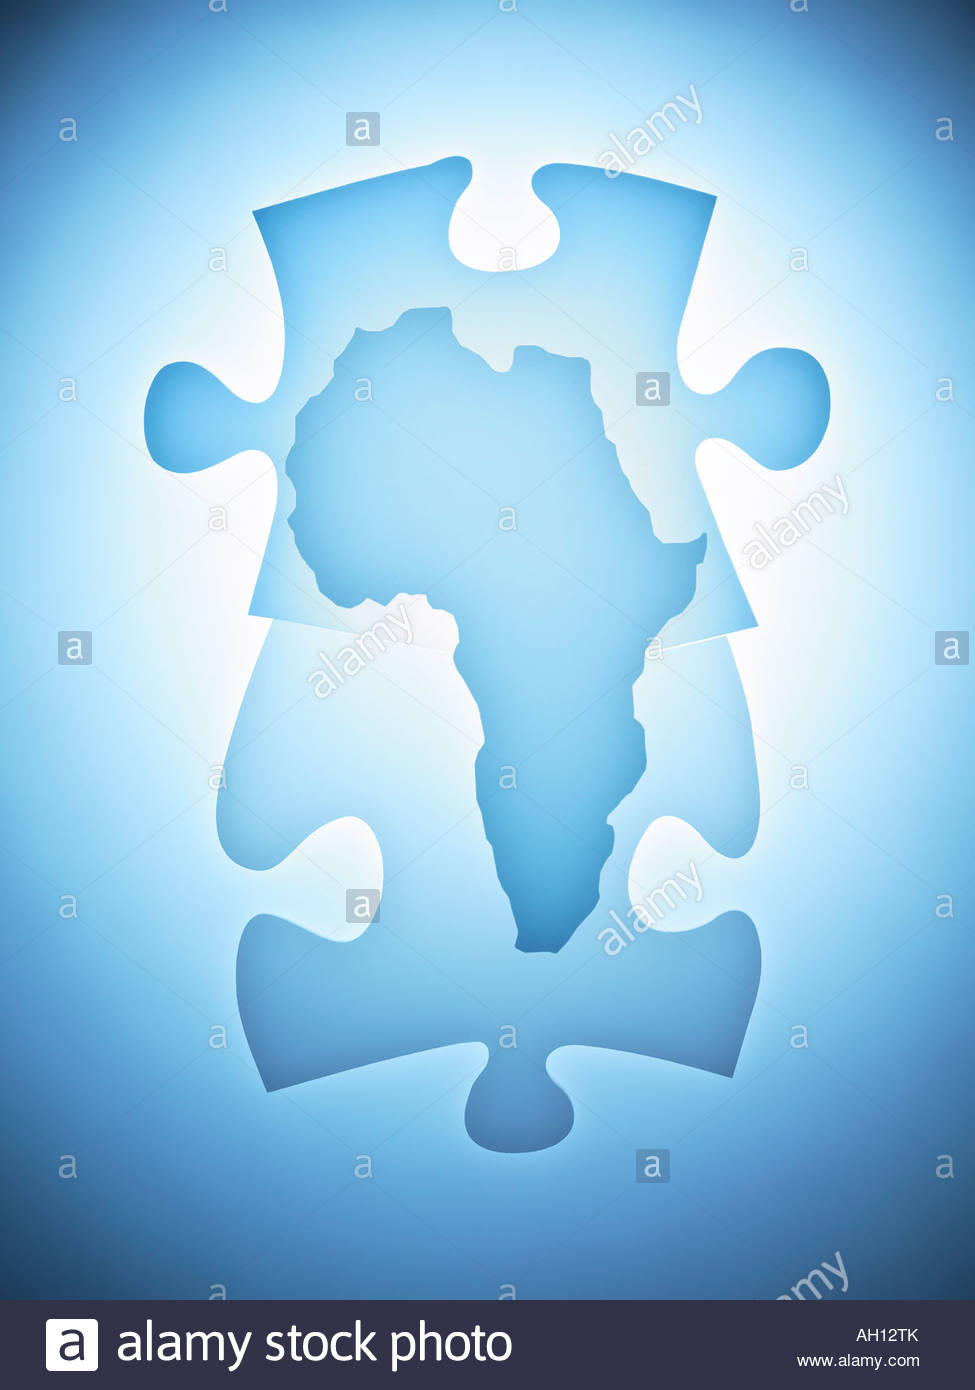 Symbolic puzzle pieces combined with map of